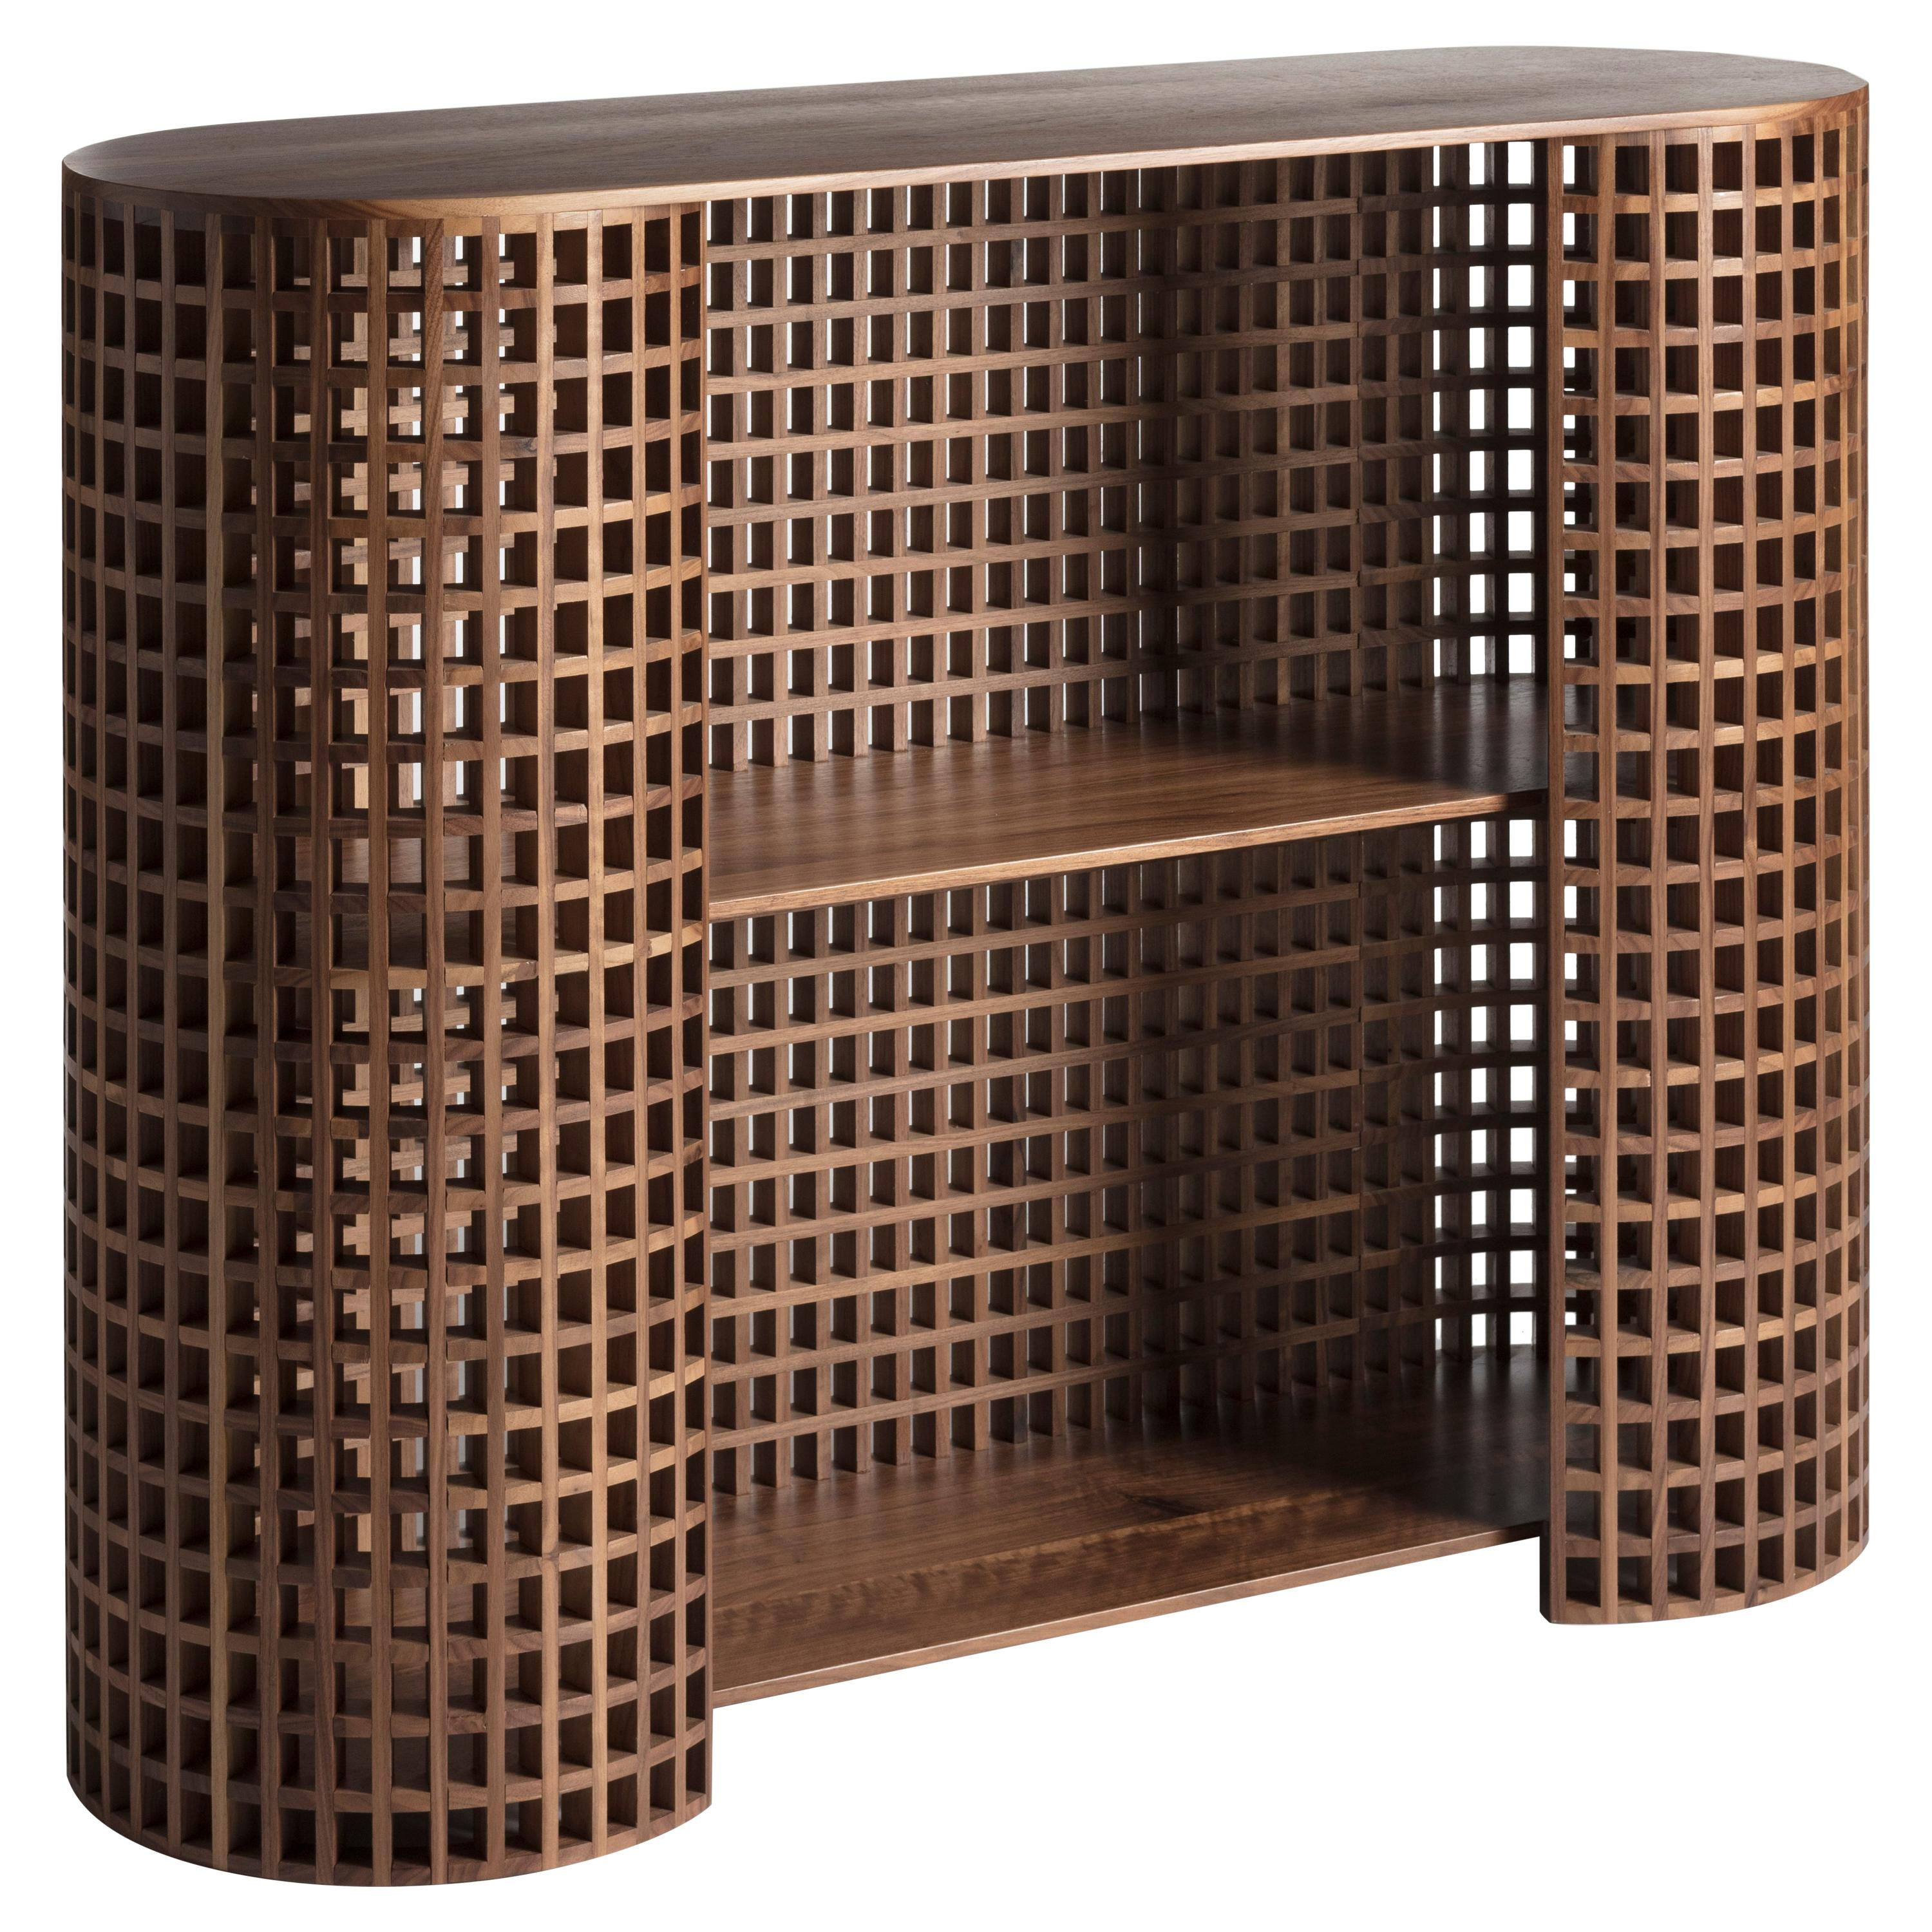 Contemporary and crafted cabinet, sideboards, shelves, bookcase in walnut